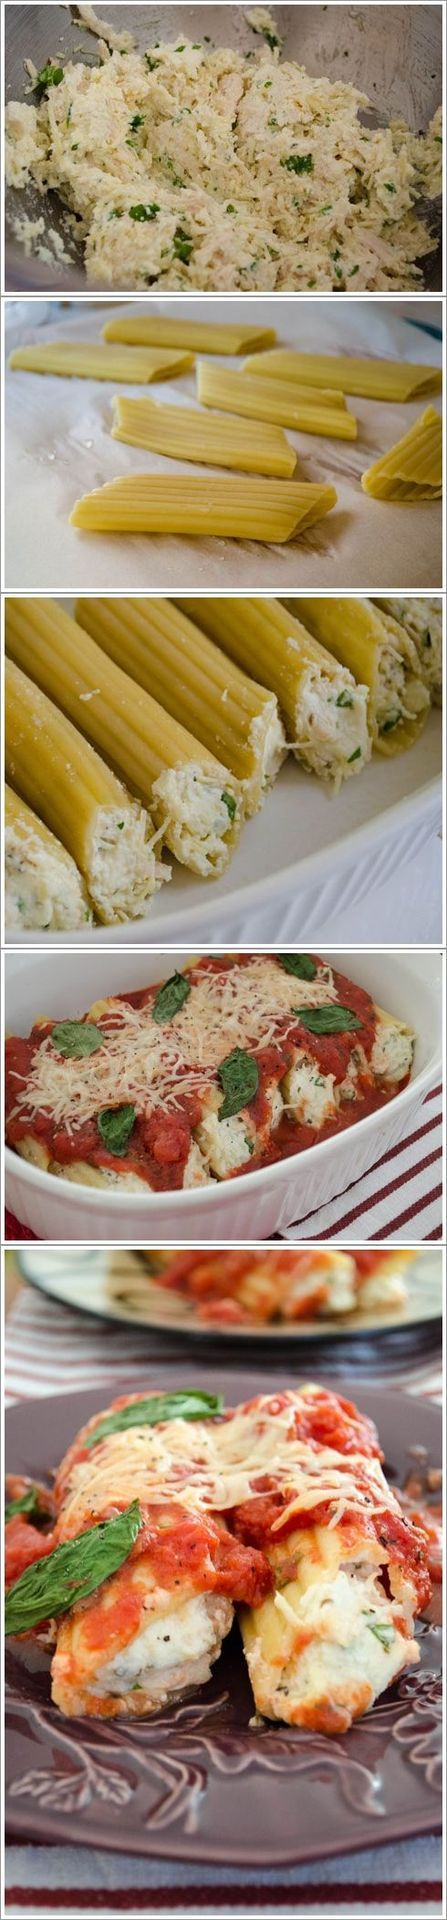 Chicken Parmesan Stuffed Manicotti (might try this with zucchini instead of noodles!)